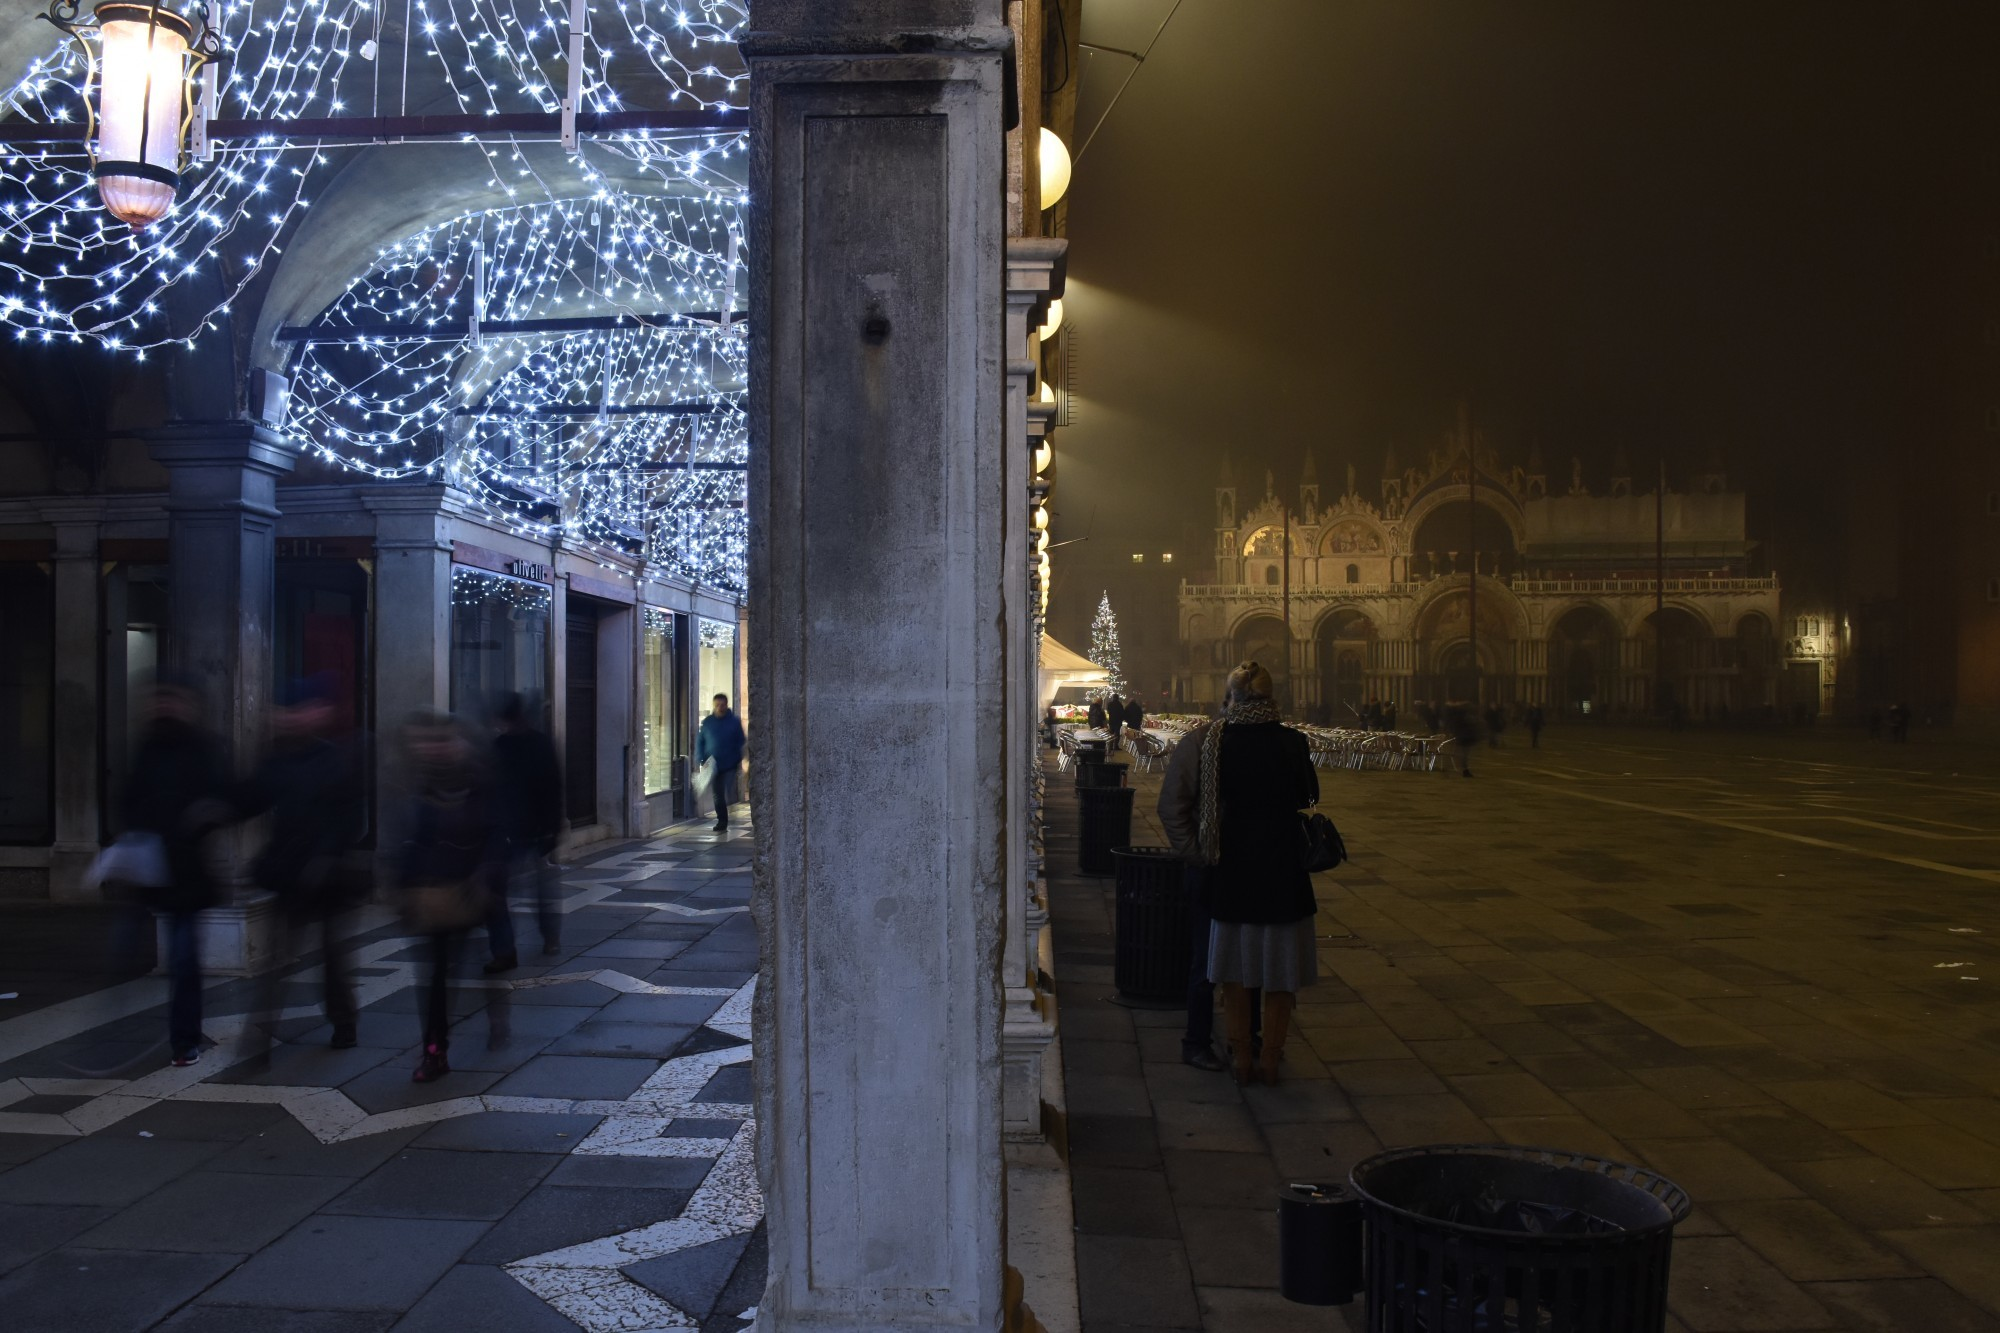 Saint Mark's evening fog